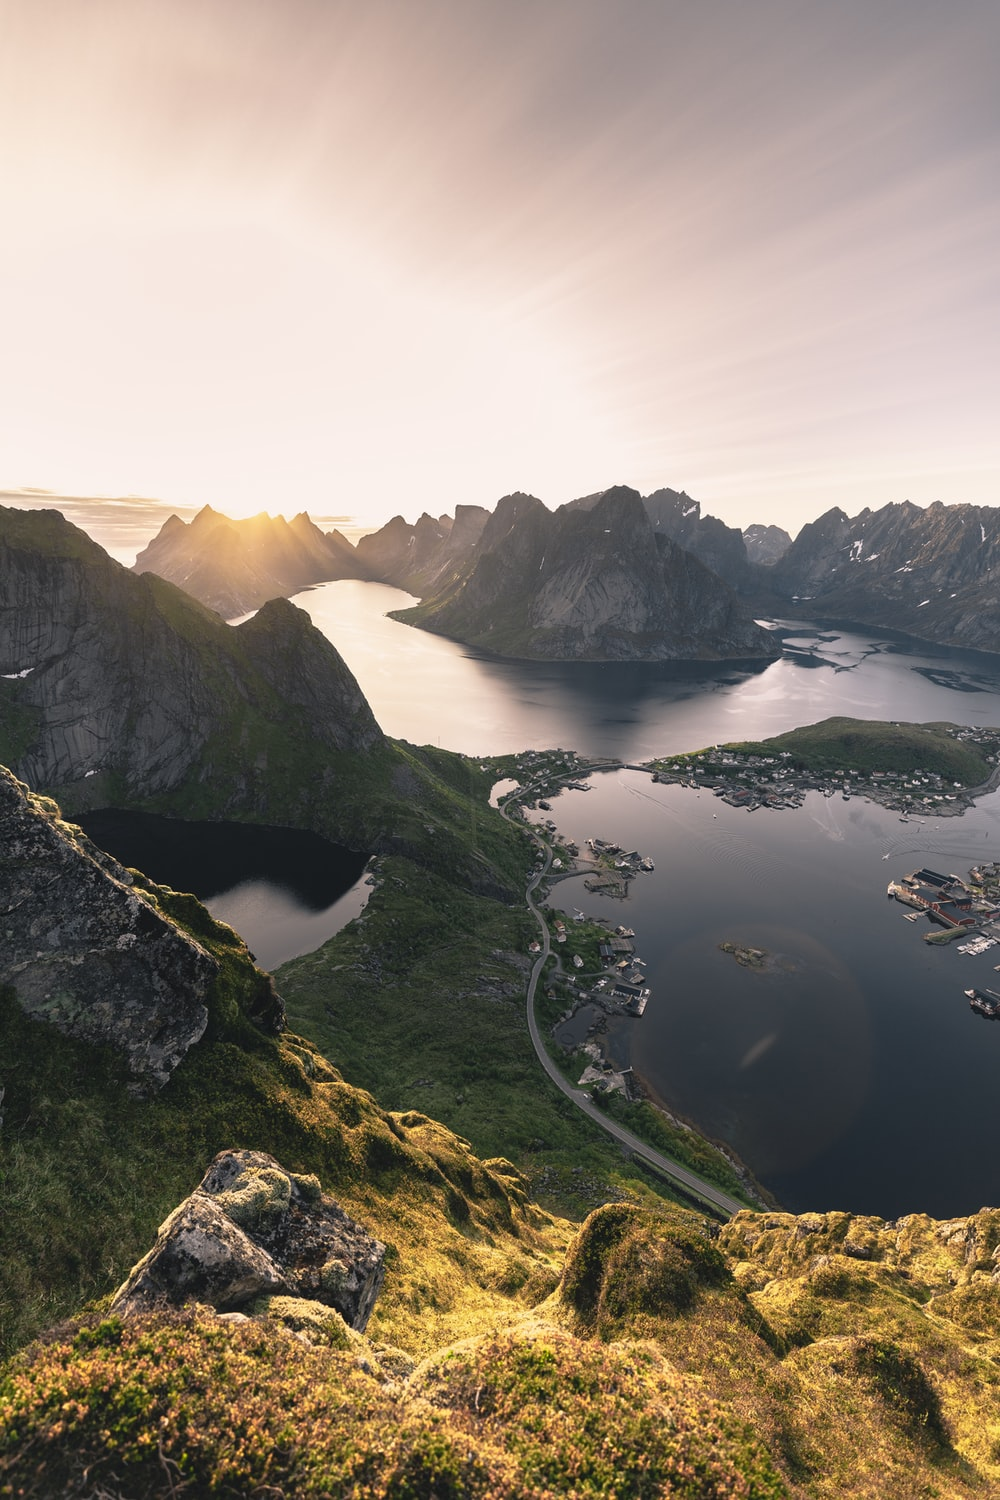 aerial photo of mountains surrounded with body of water during golden hour